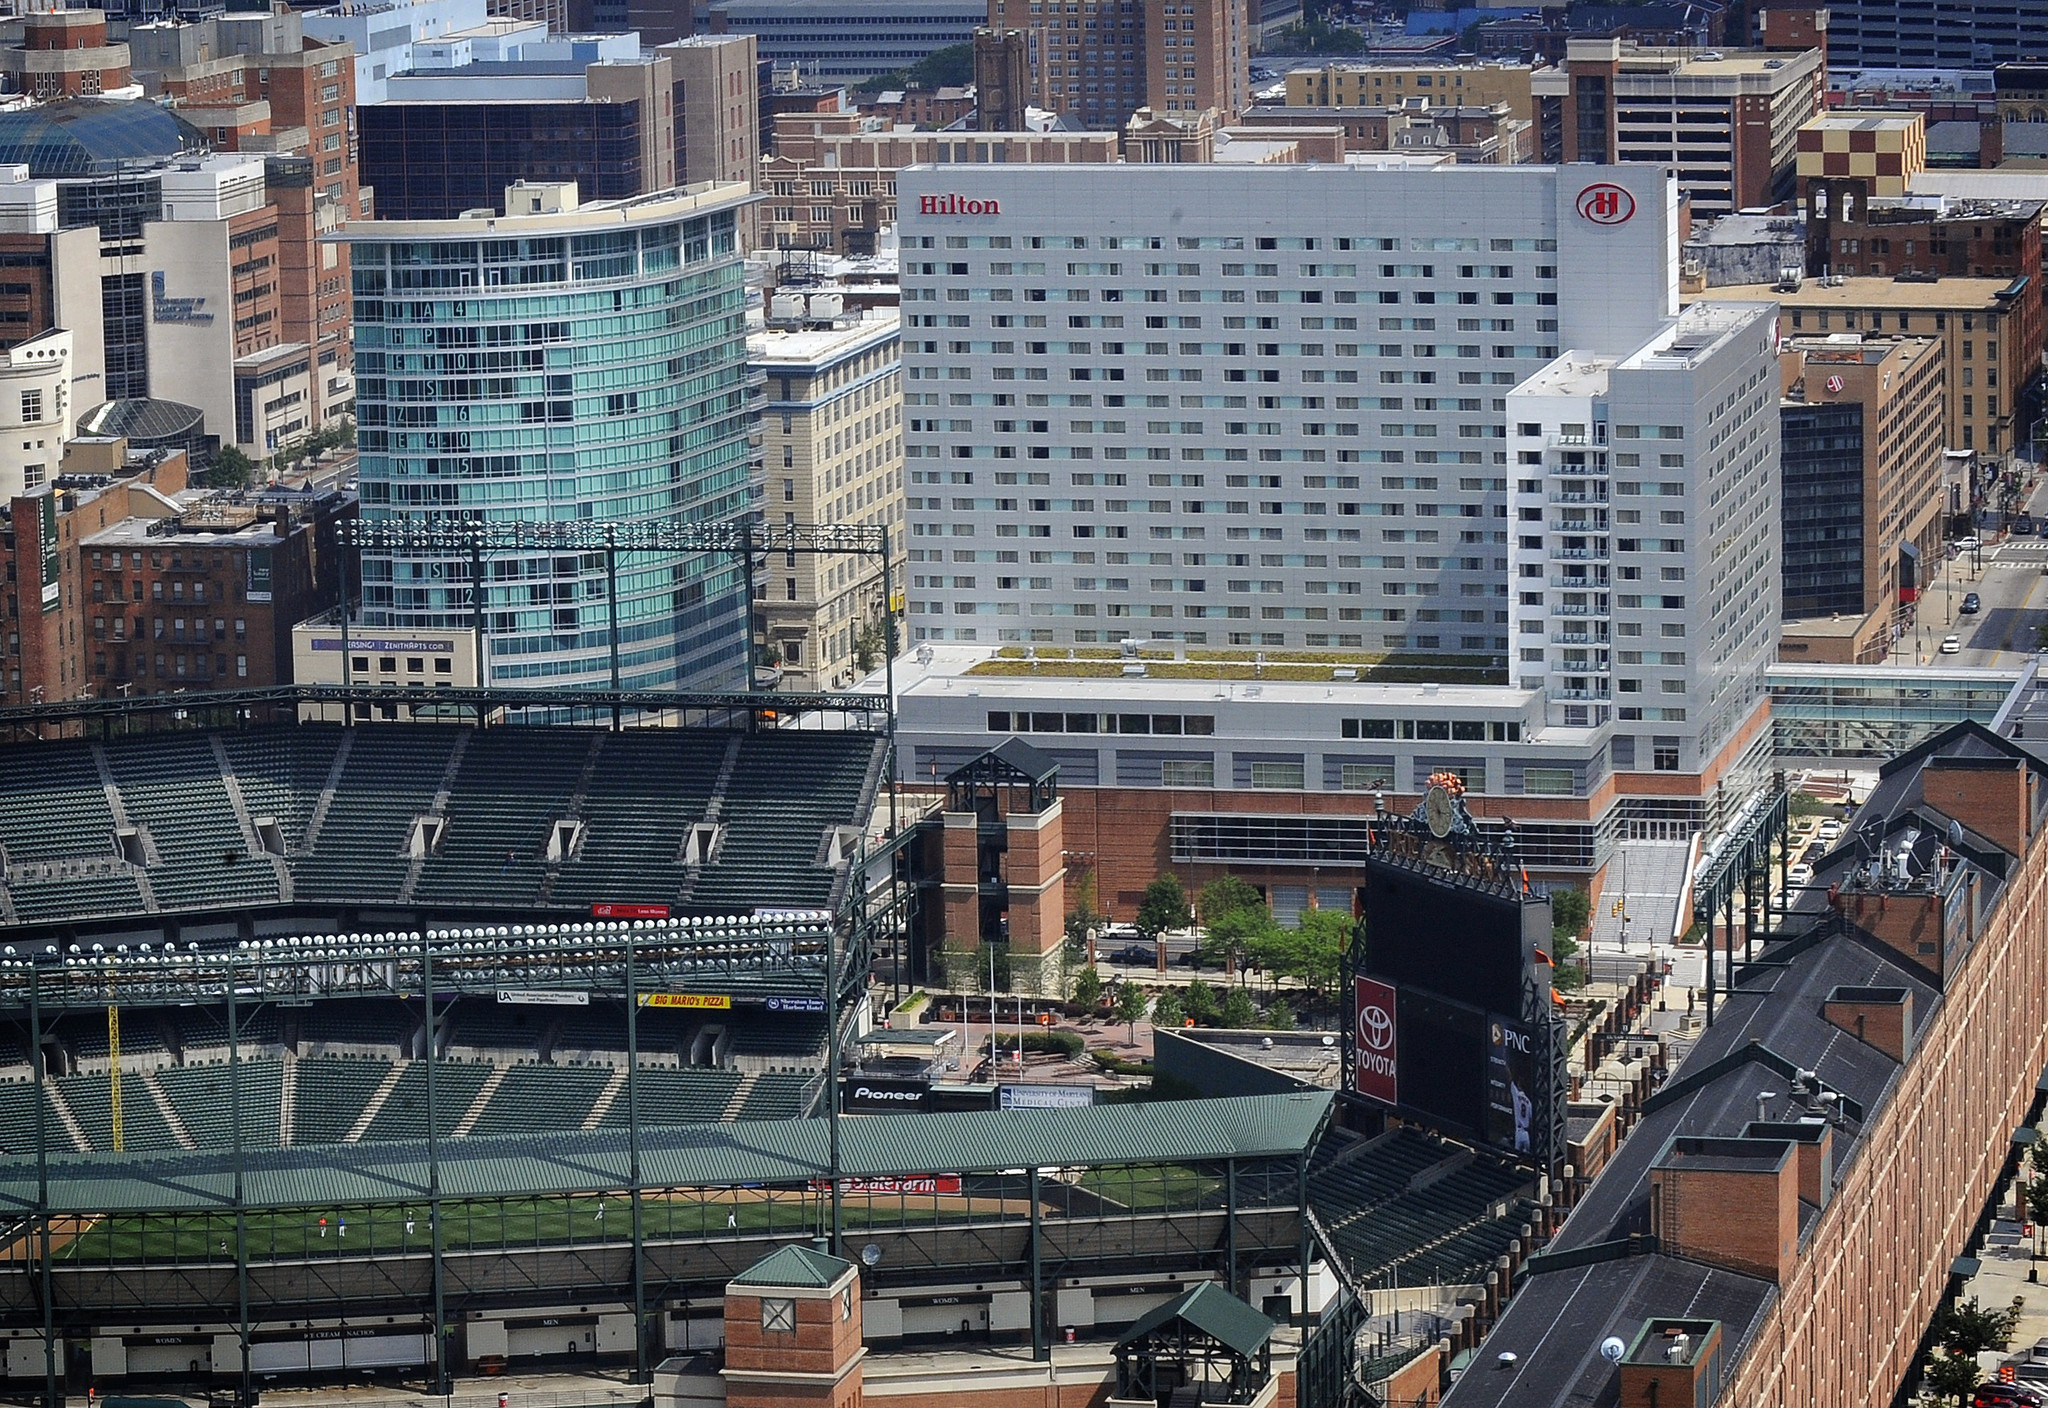 City Owned Hilton Baltimore Hotel Reports 5 2m Loss In